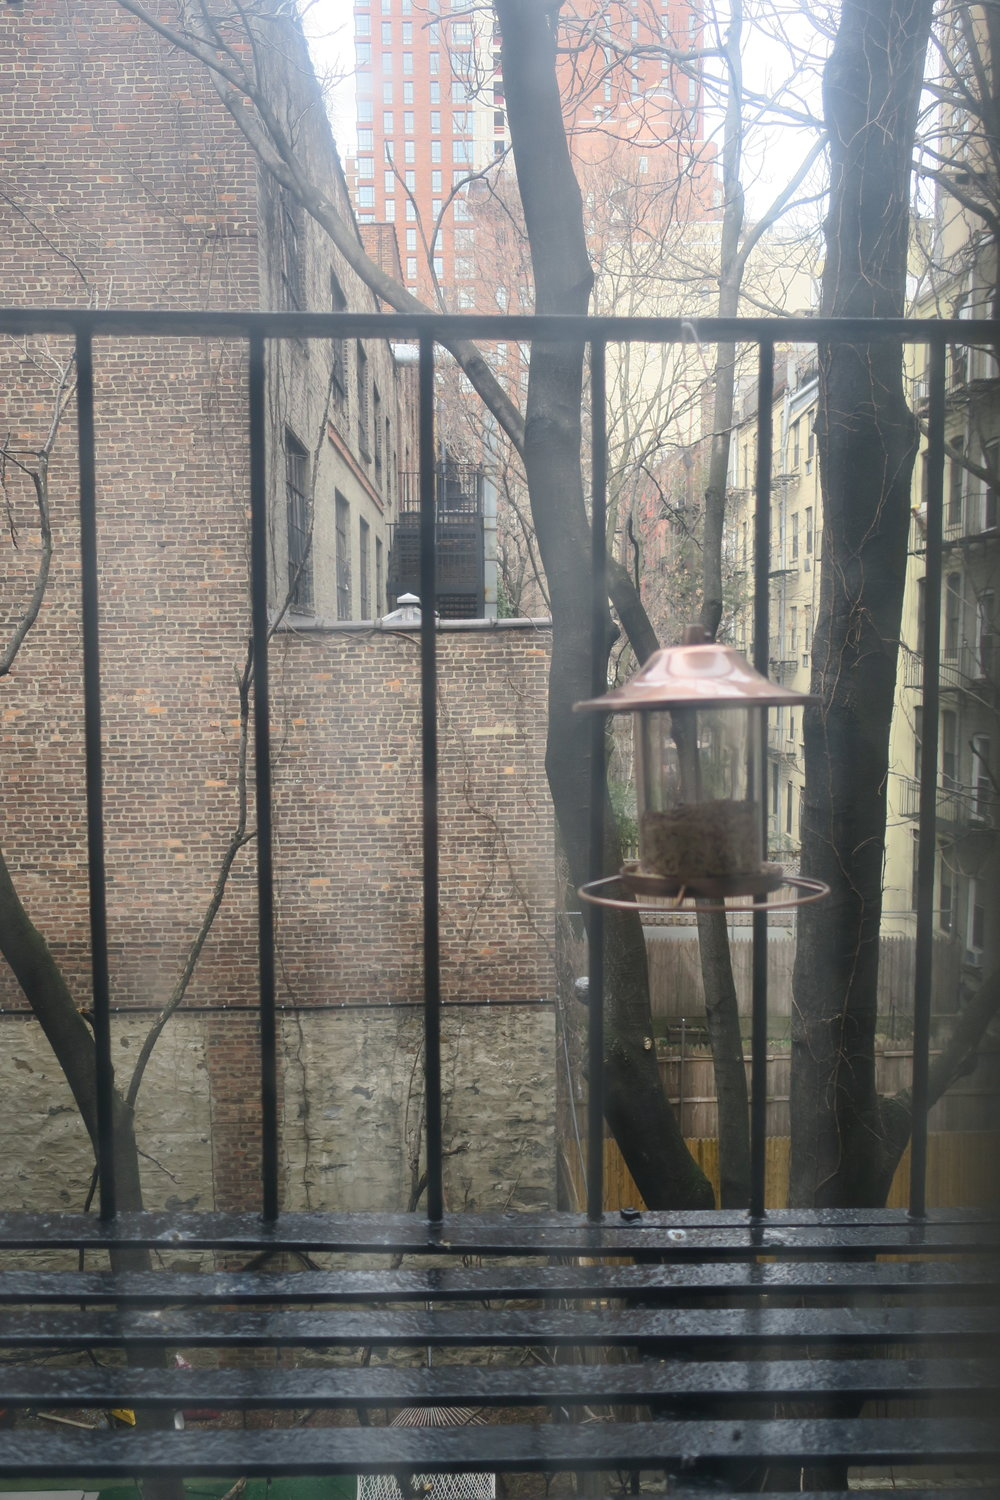 Bird feeder outside our window. We wake up to doves hooting some mornings.